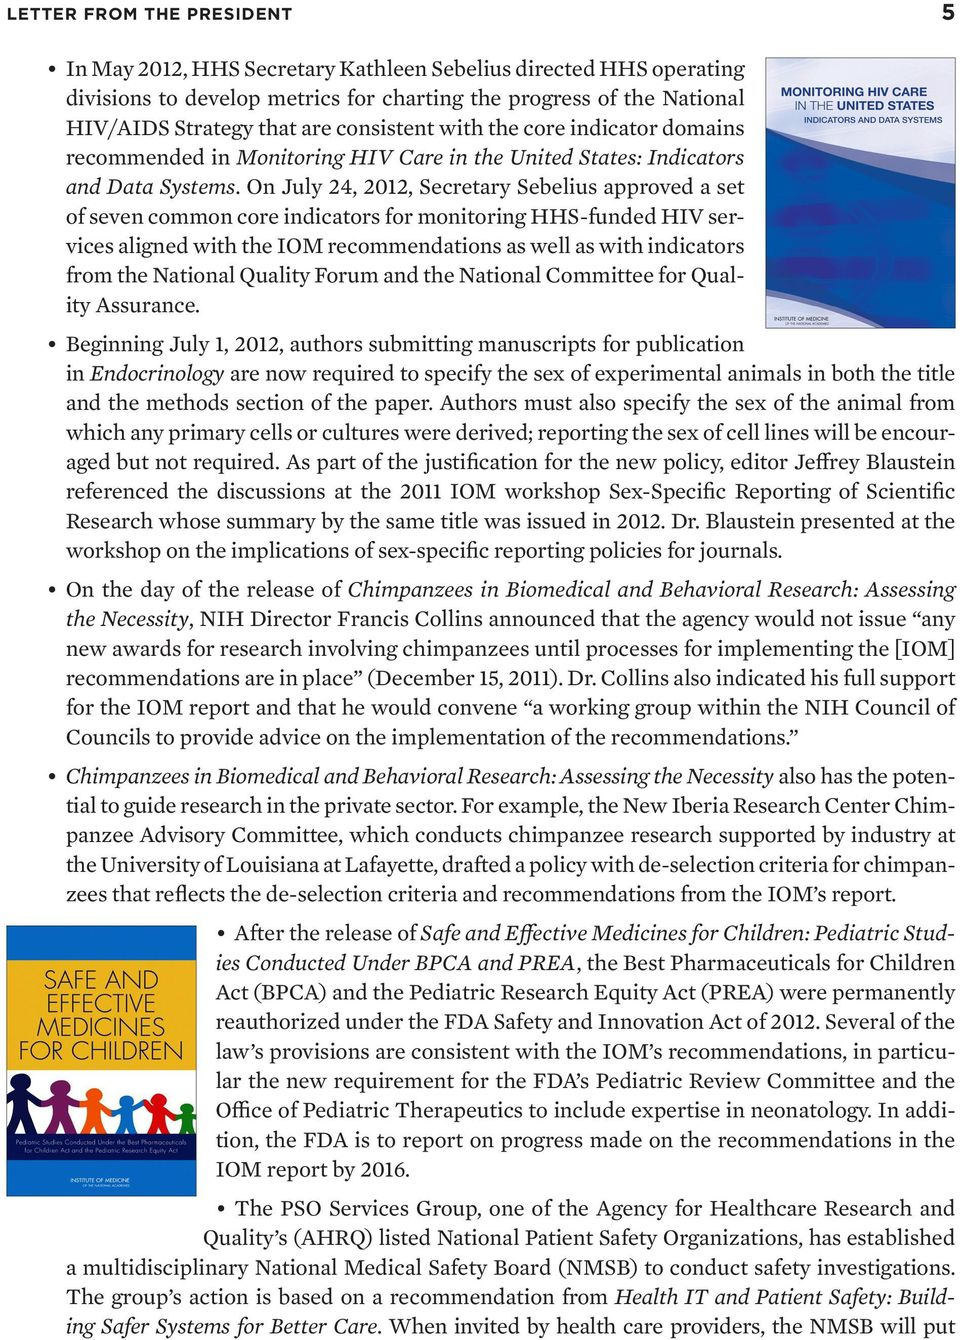 On July 24, 2012, Secretary Sebelius approved a set of seven common core indicators for monitoring HHS-funded HIV services aligned with the IOM recommendations as well as with indicators from the